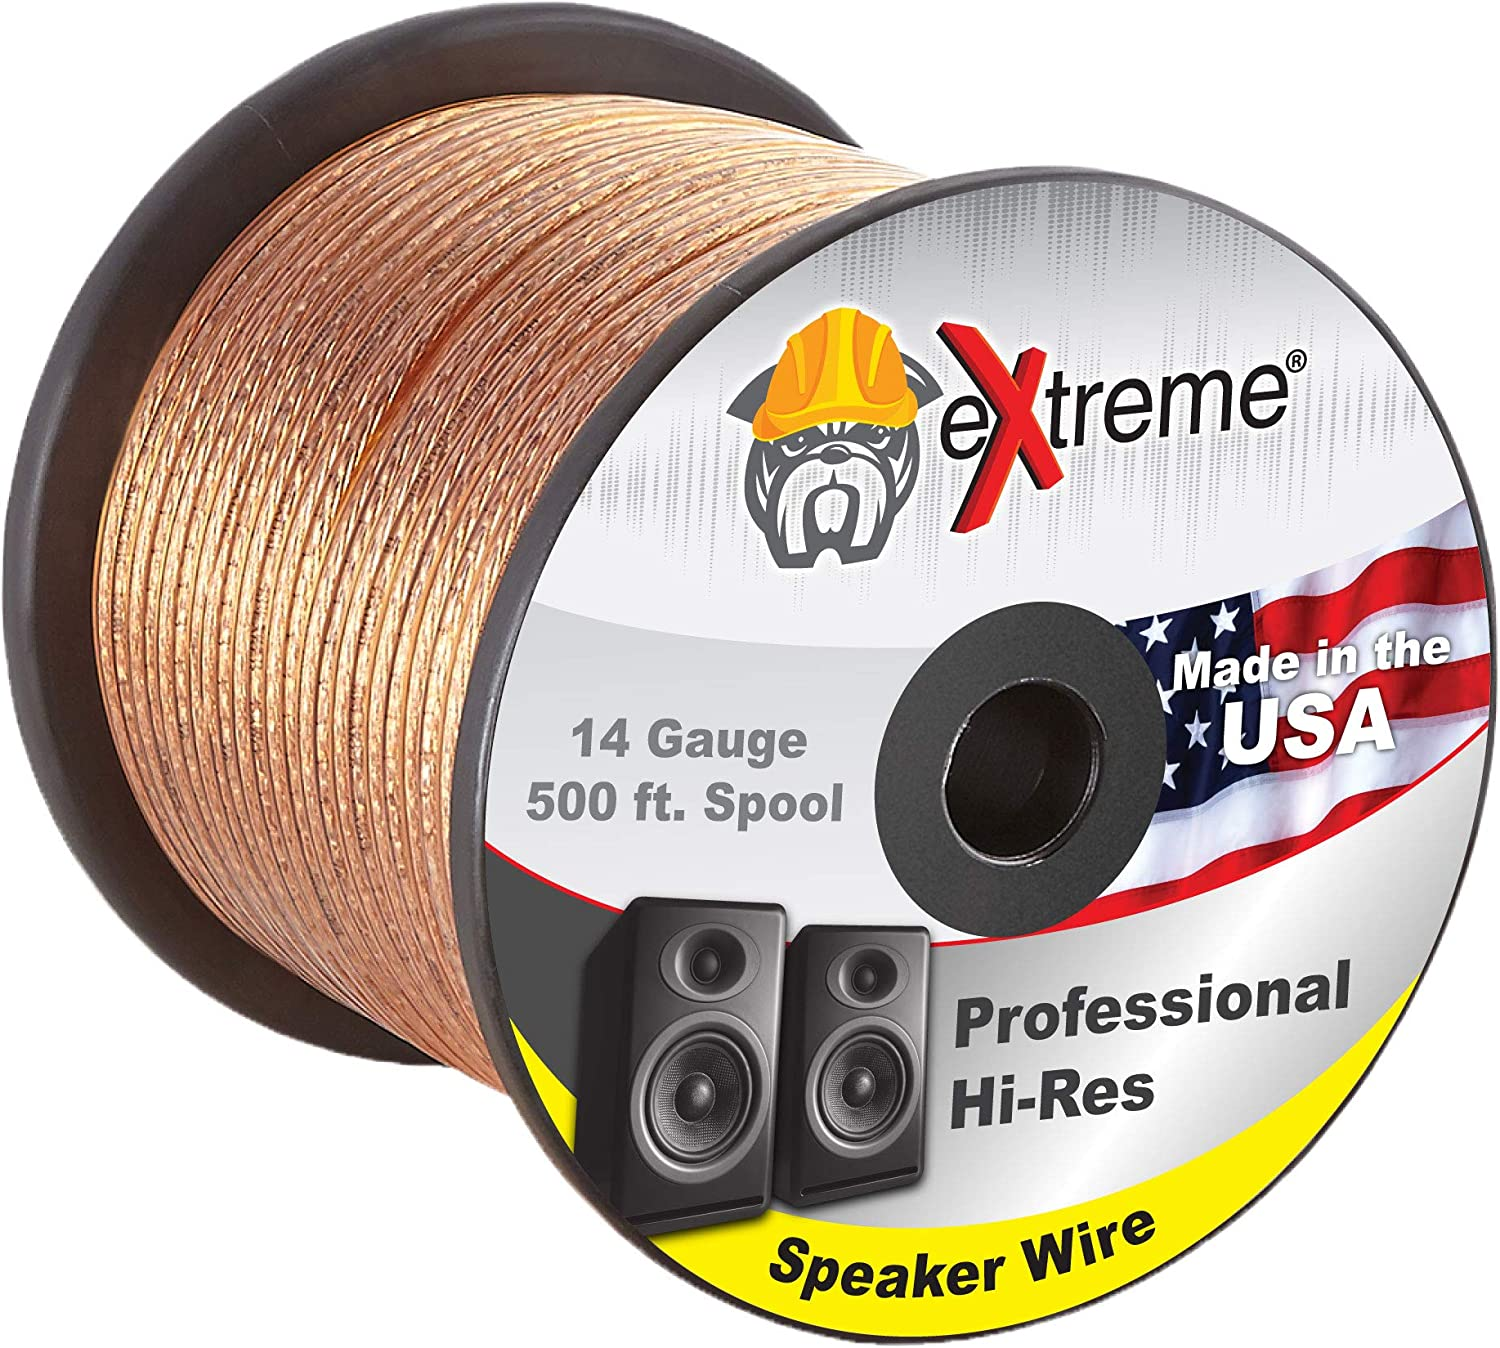 Professional Grade 14 Gauge Speaker Cable – Pure Stranded Copper Speaker Wire in 500 Feet for Car Audio, Home Theater Systems, Radio Speakers, Any Audio Application by eXtreme Consumer Products